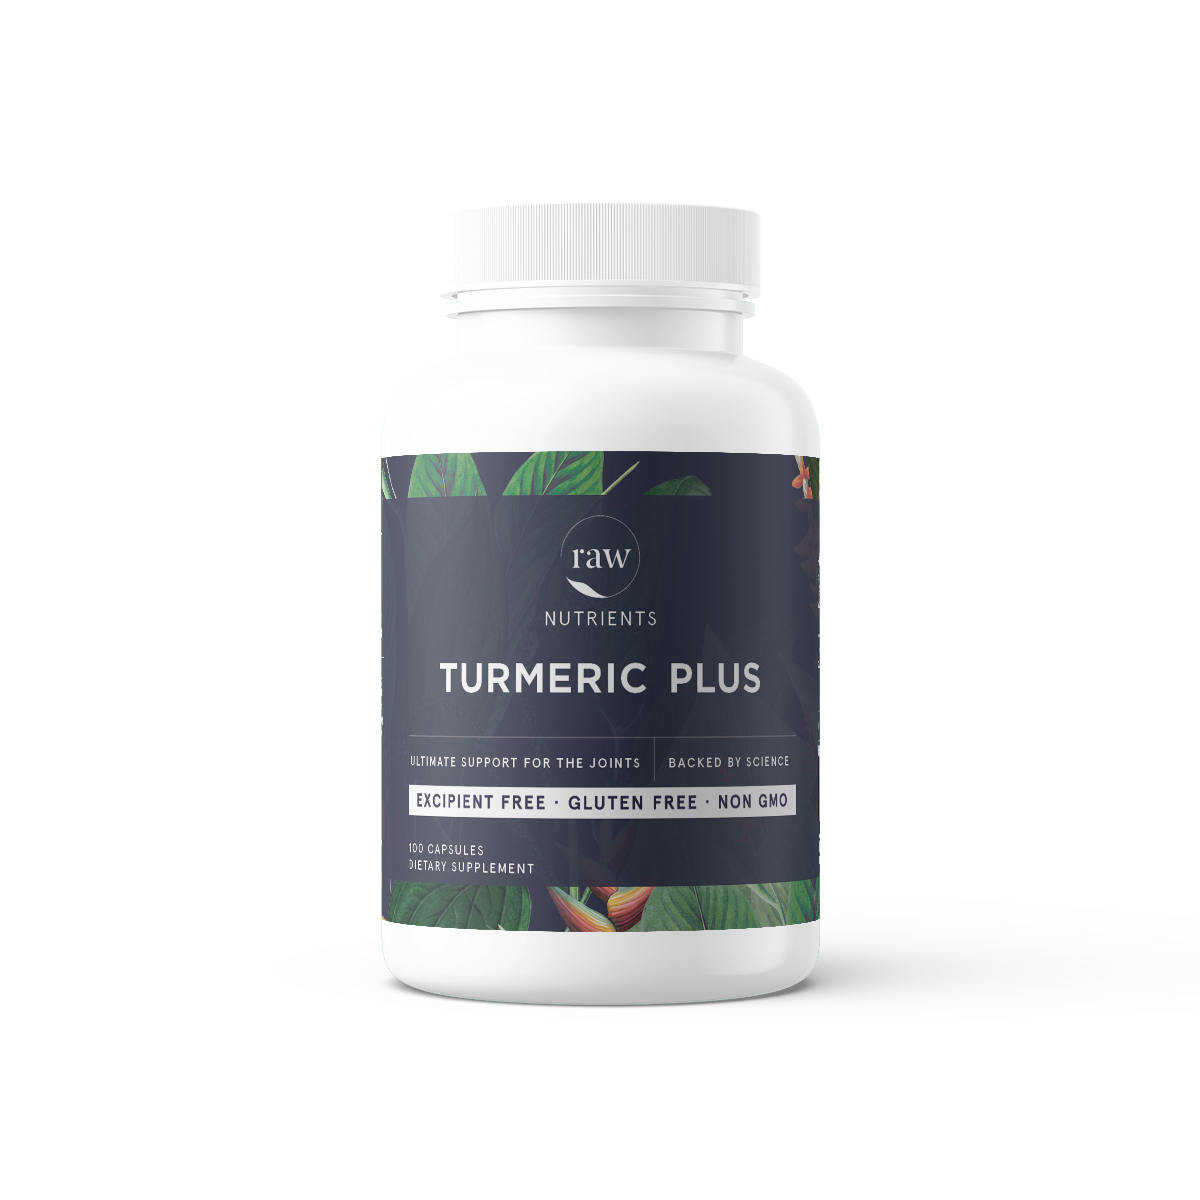 Raw Nutrients Turmeric Plus